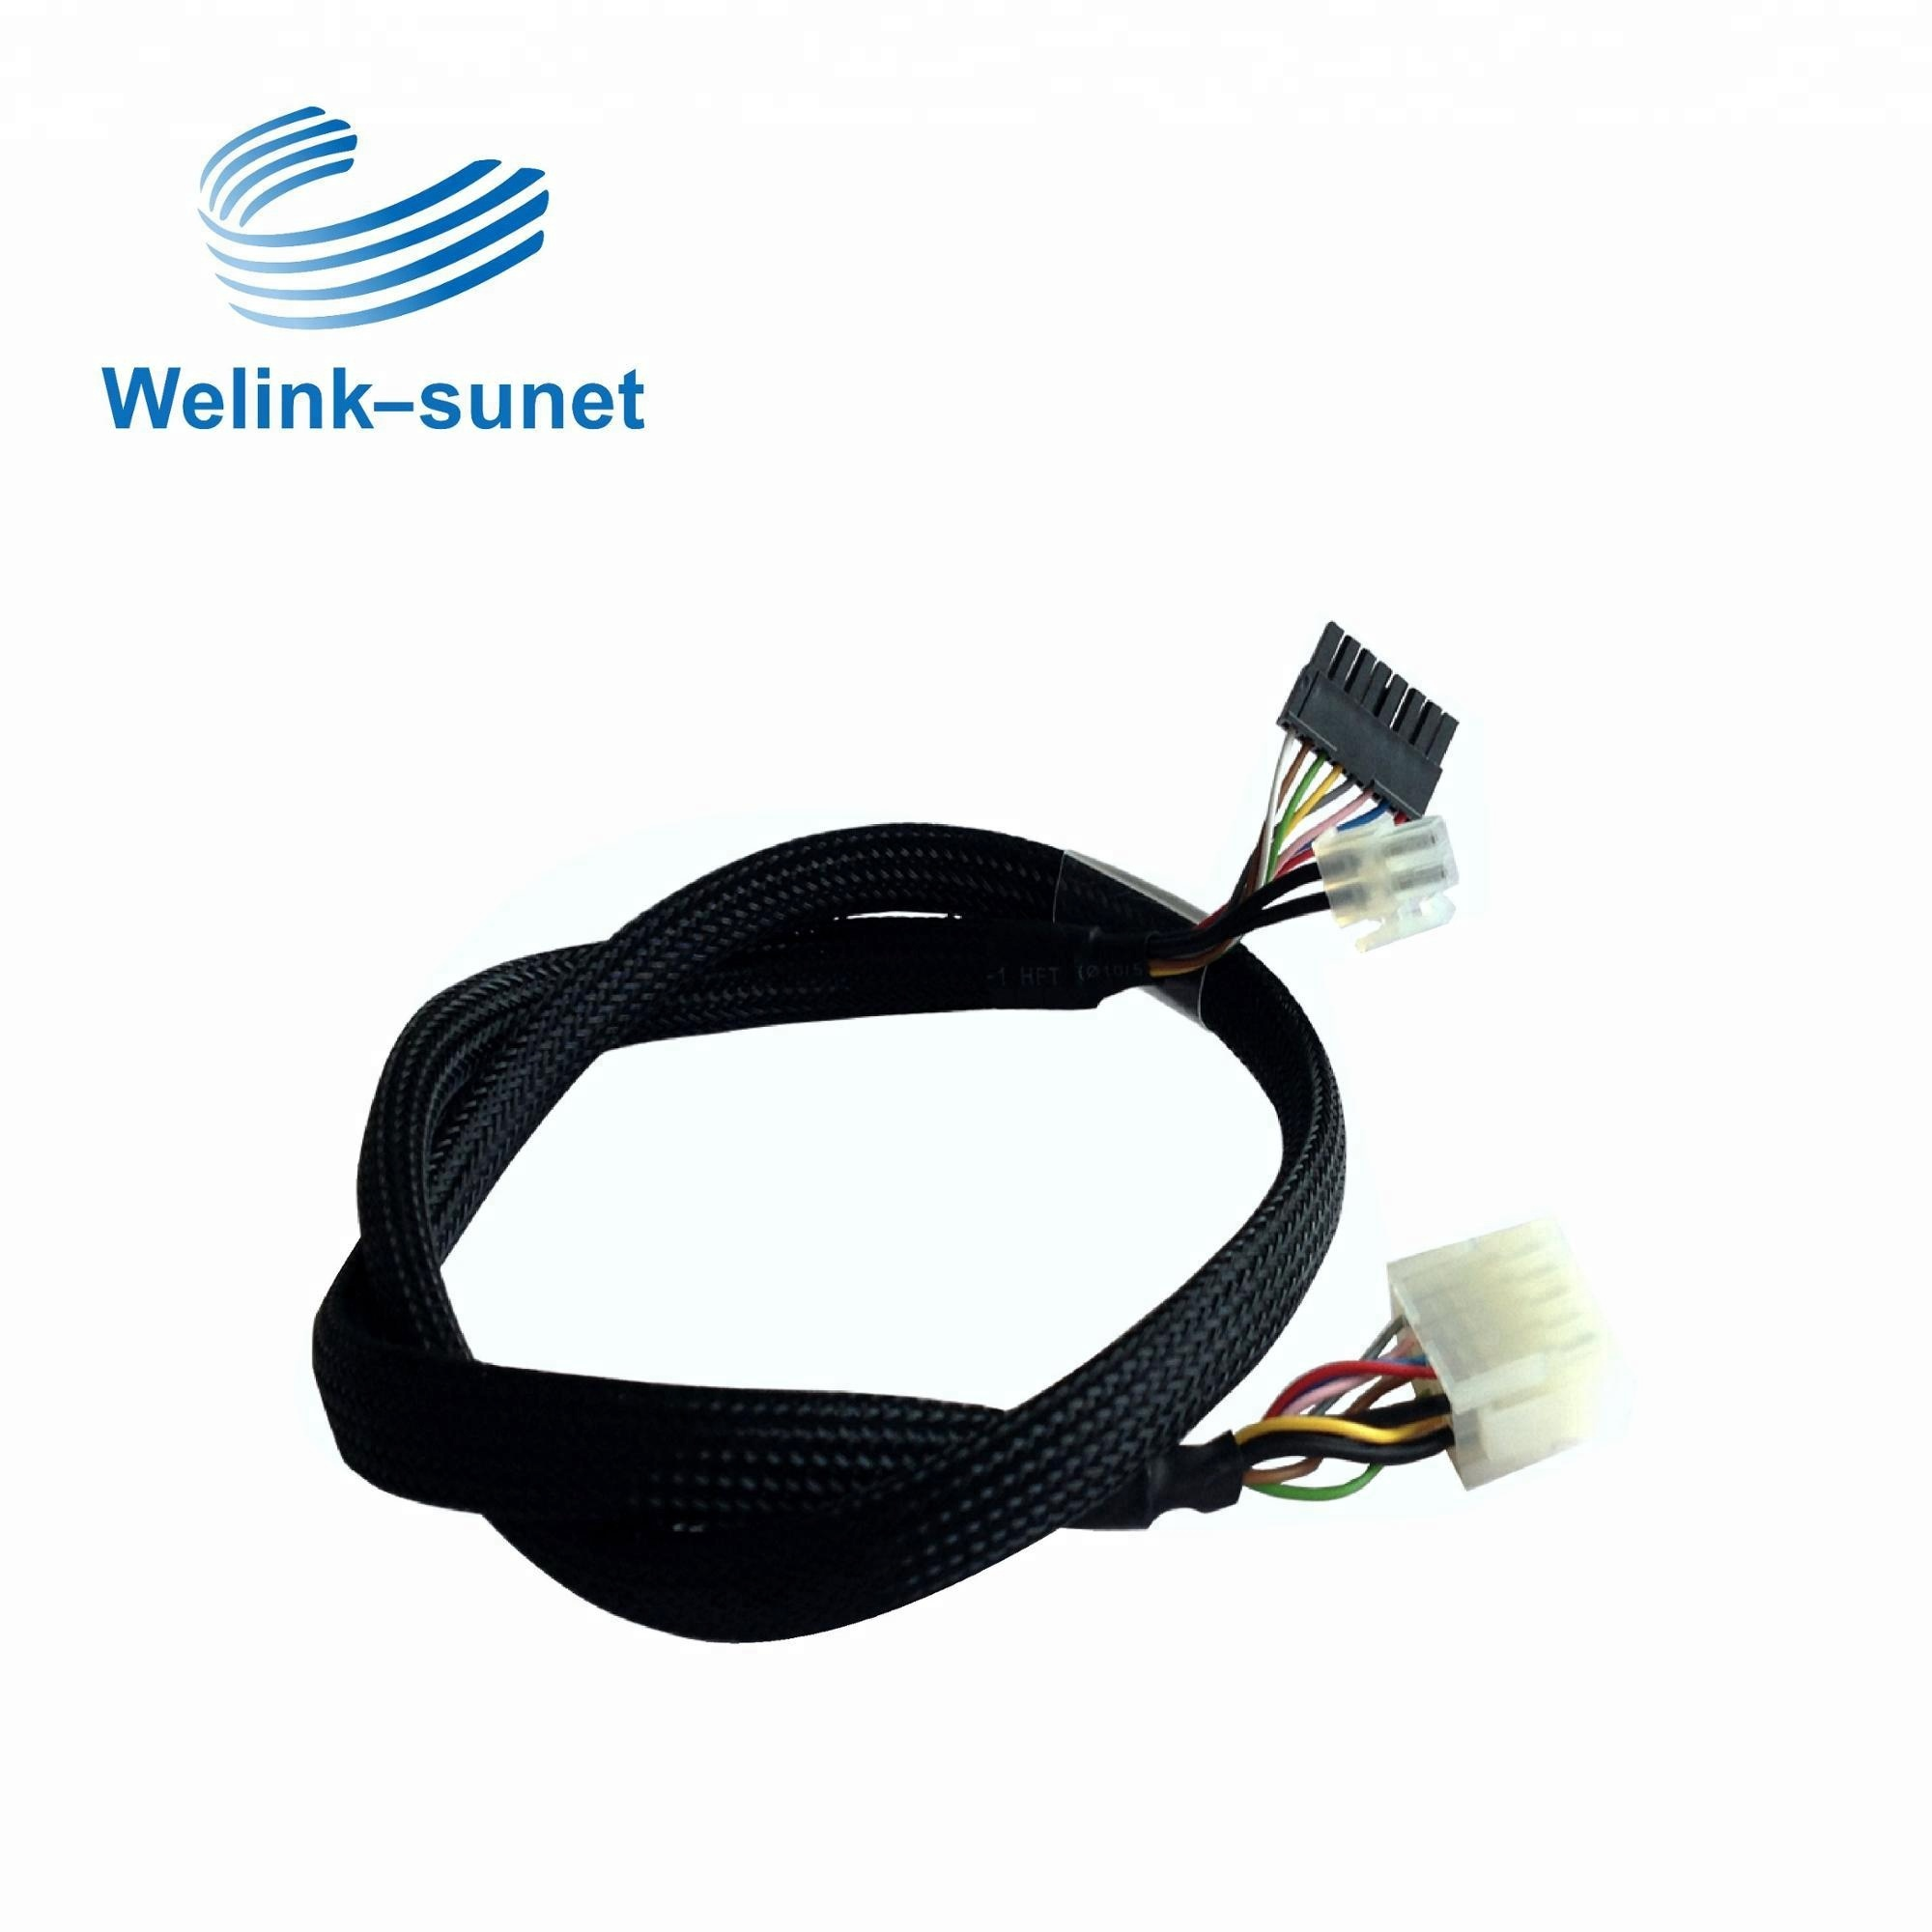 Helukable Super Flexible Cable Wire Harness For Industrial Robot - Buy Wiring  Harness For Forklift,Computer Wiring Harness,Car Wire Harness Product on ...